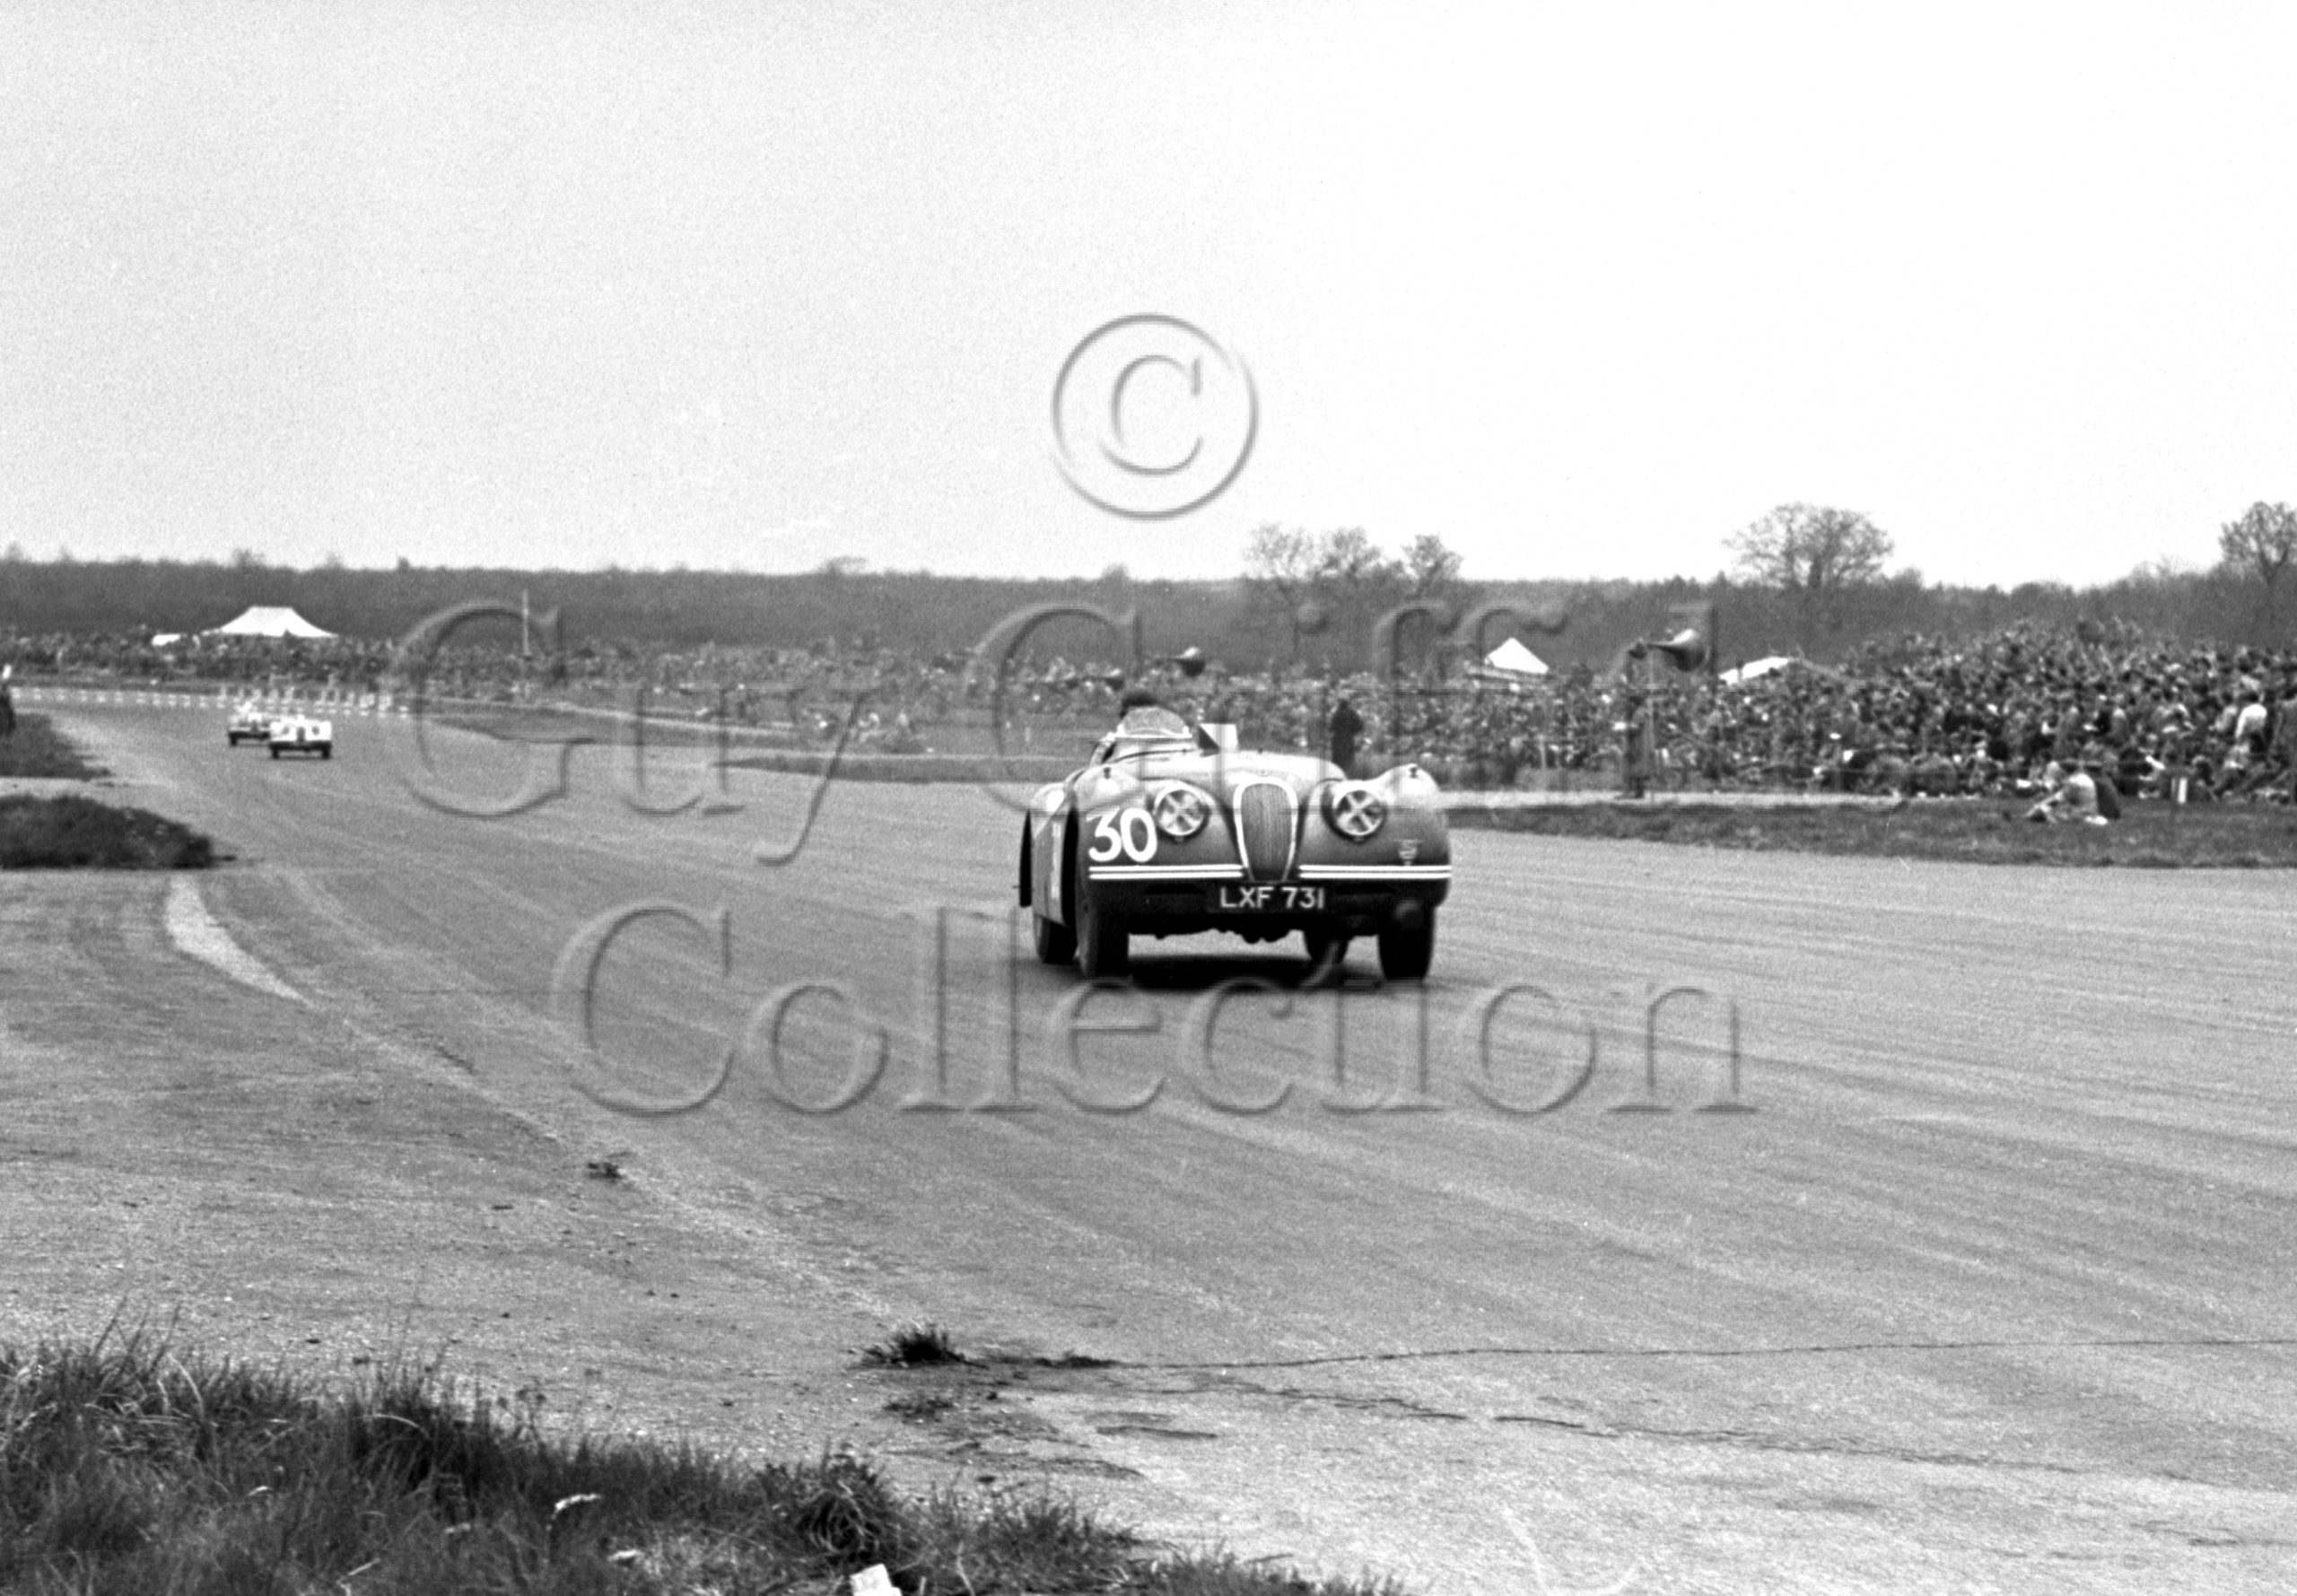 42-284–J-D-Hamilton–Jaguar-XK-120-LXF-731–Silverstone–05-05-1951.jpg - Guy Griffiths Collection